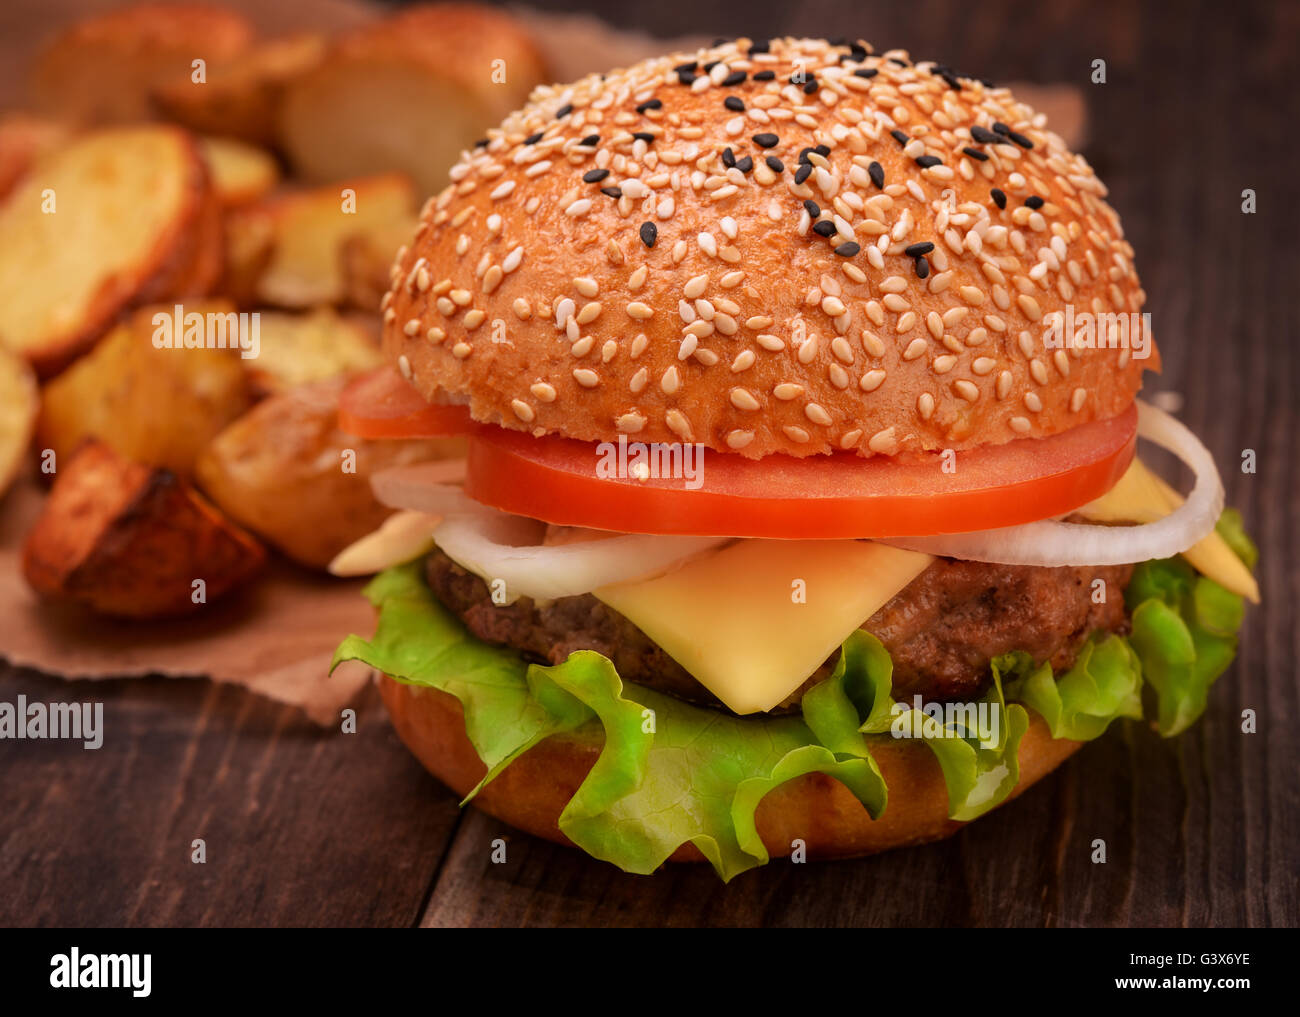 Fresh tasty burger garnished with potato - Stock Image